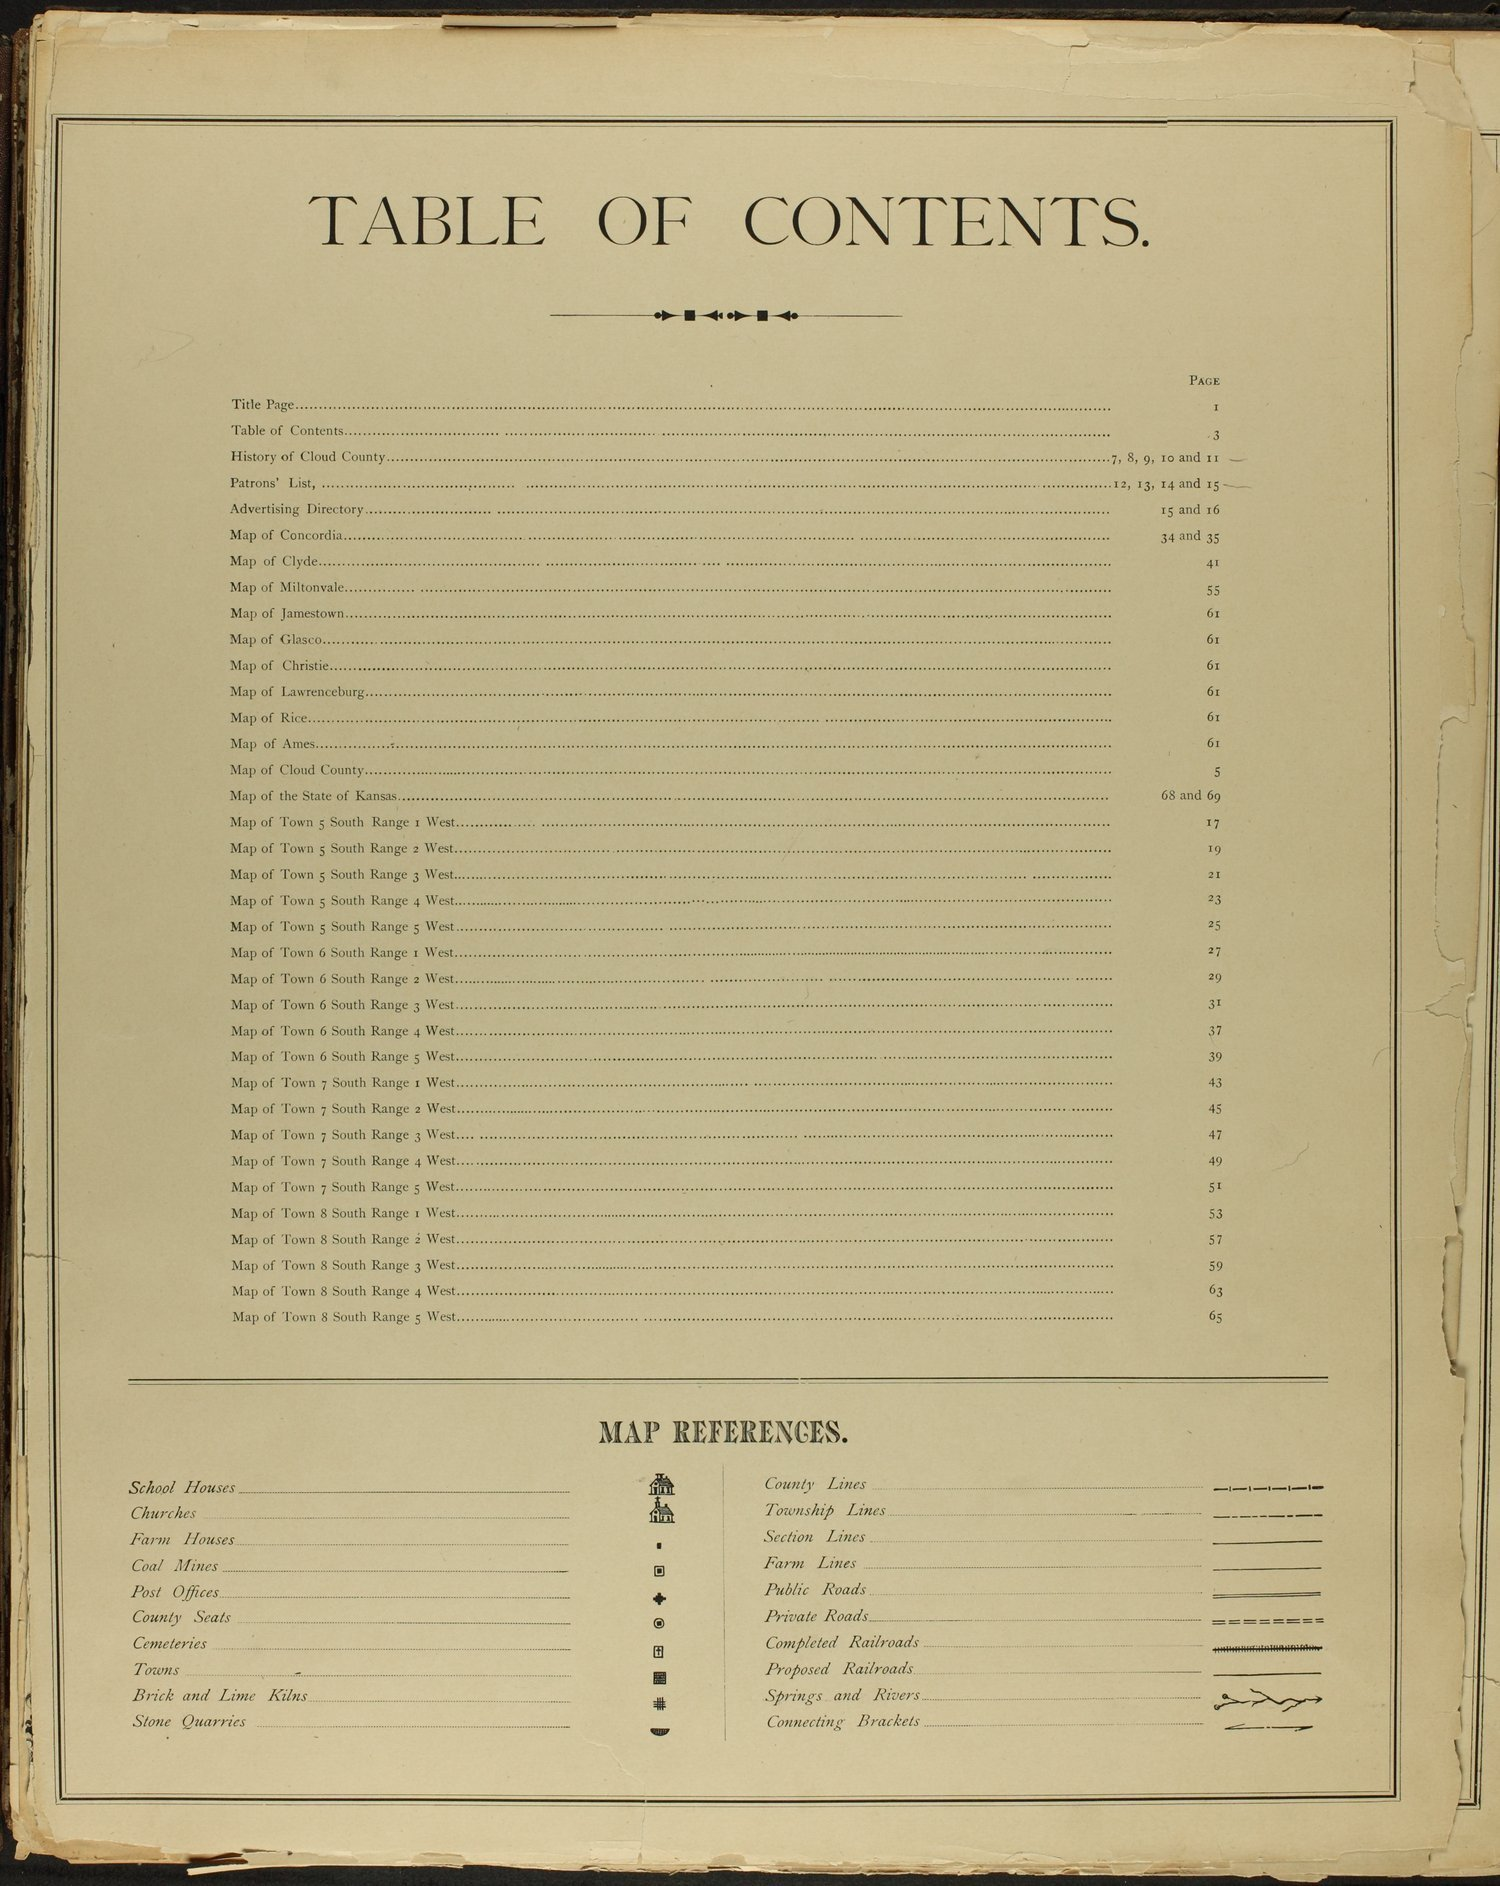 Edward's atlas of Cloud County, Kansas - Table of Contents